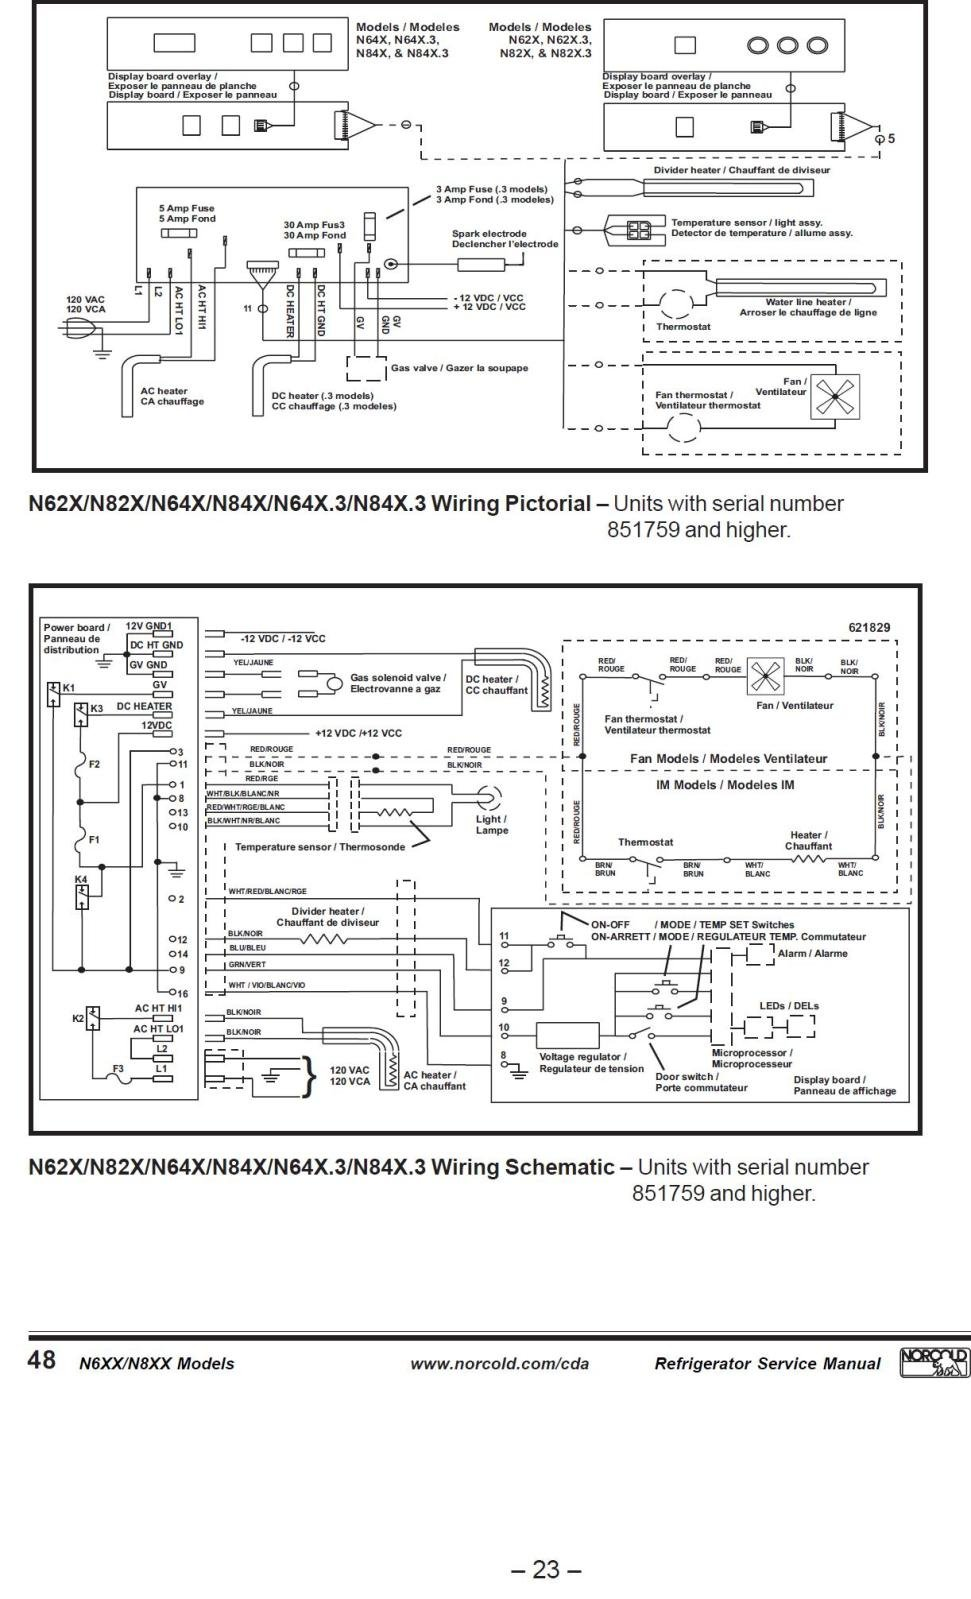 2i0r6s7 replaced norcold circuit board 628661, forgot where the wires go norcold power board wiring diagram at fashall.co